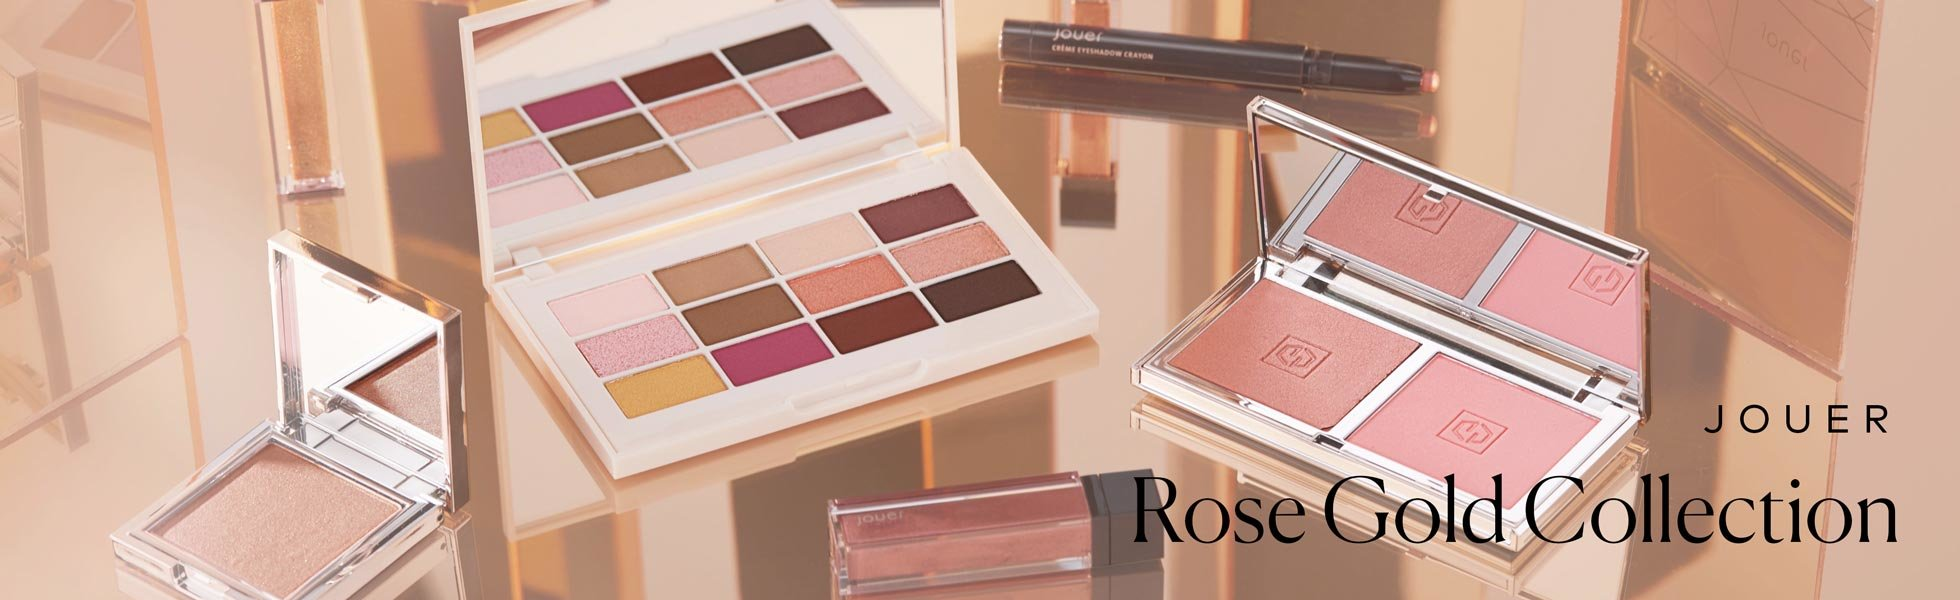 Jouer Rose Gold Collection